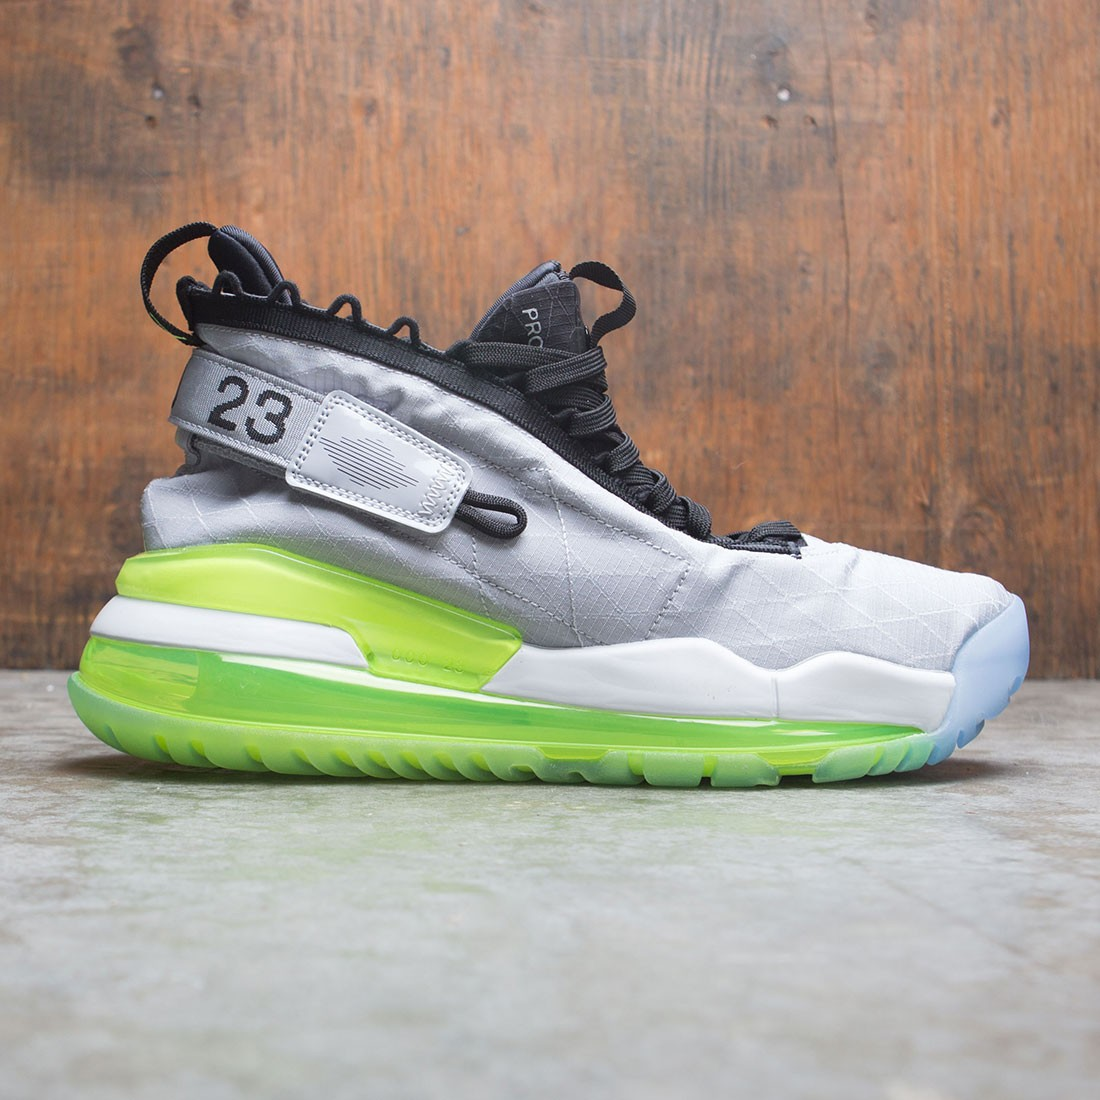 Jordan Men Proto-Max 720 (wolf grey / black-volt-pure platinum)